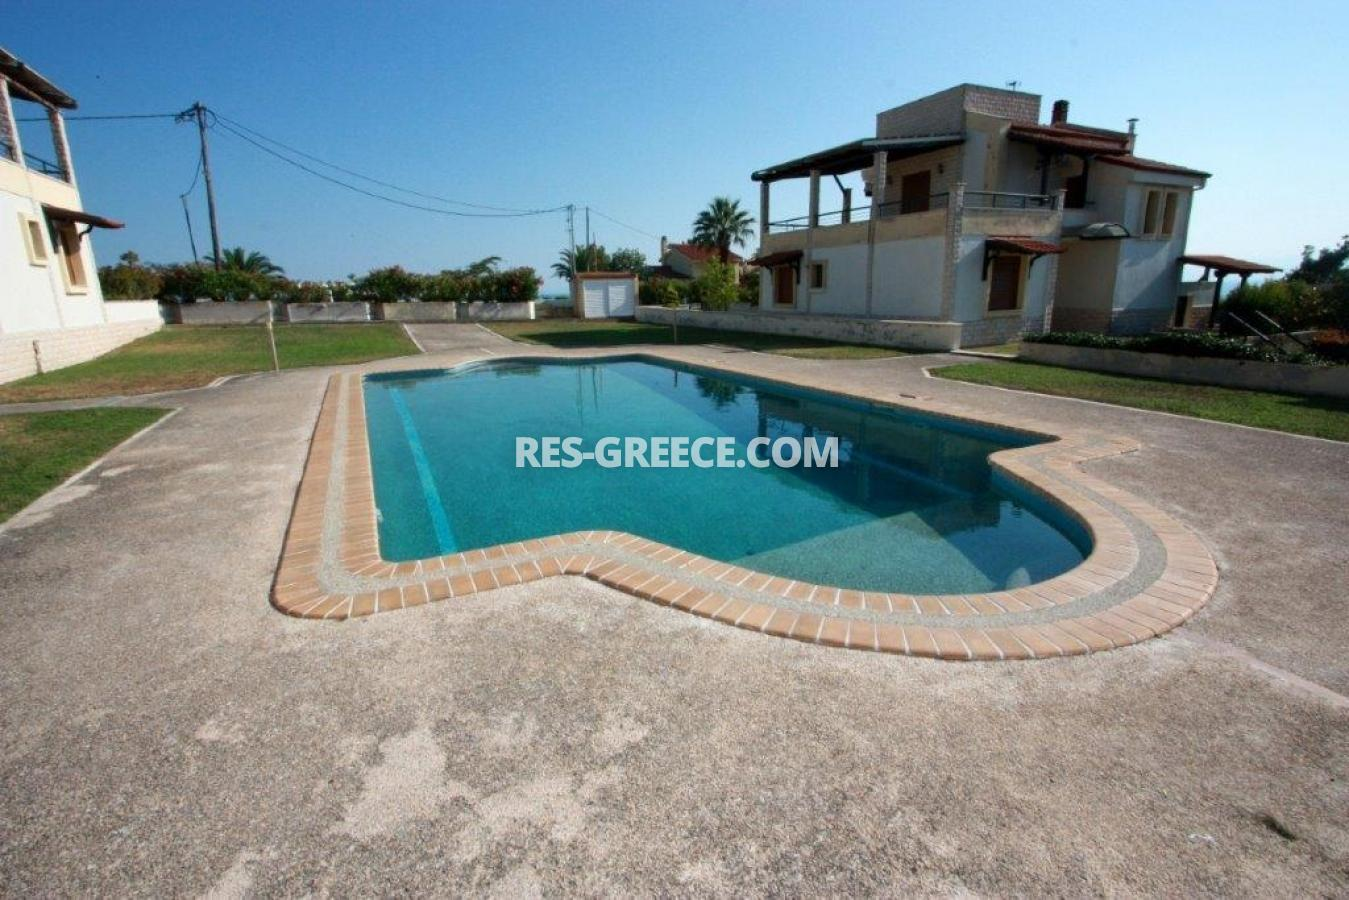 Dasotopi 1, Halkidiki-Kassandra, Greece - beachfront complex with common pool and elevator to the beach - Photo 19